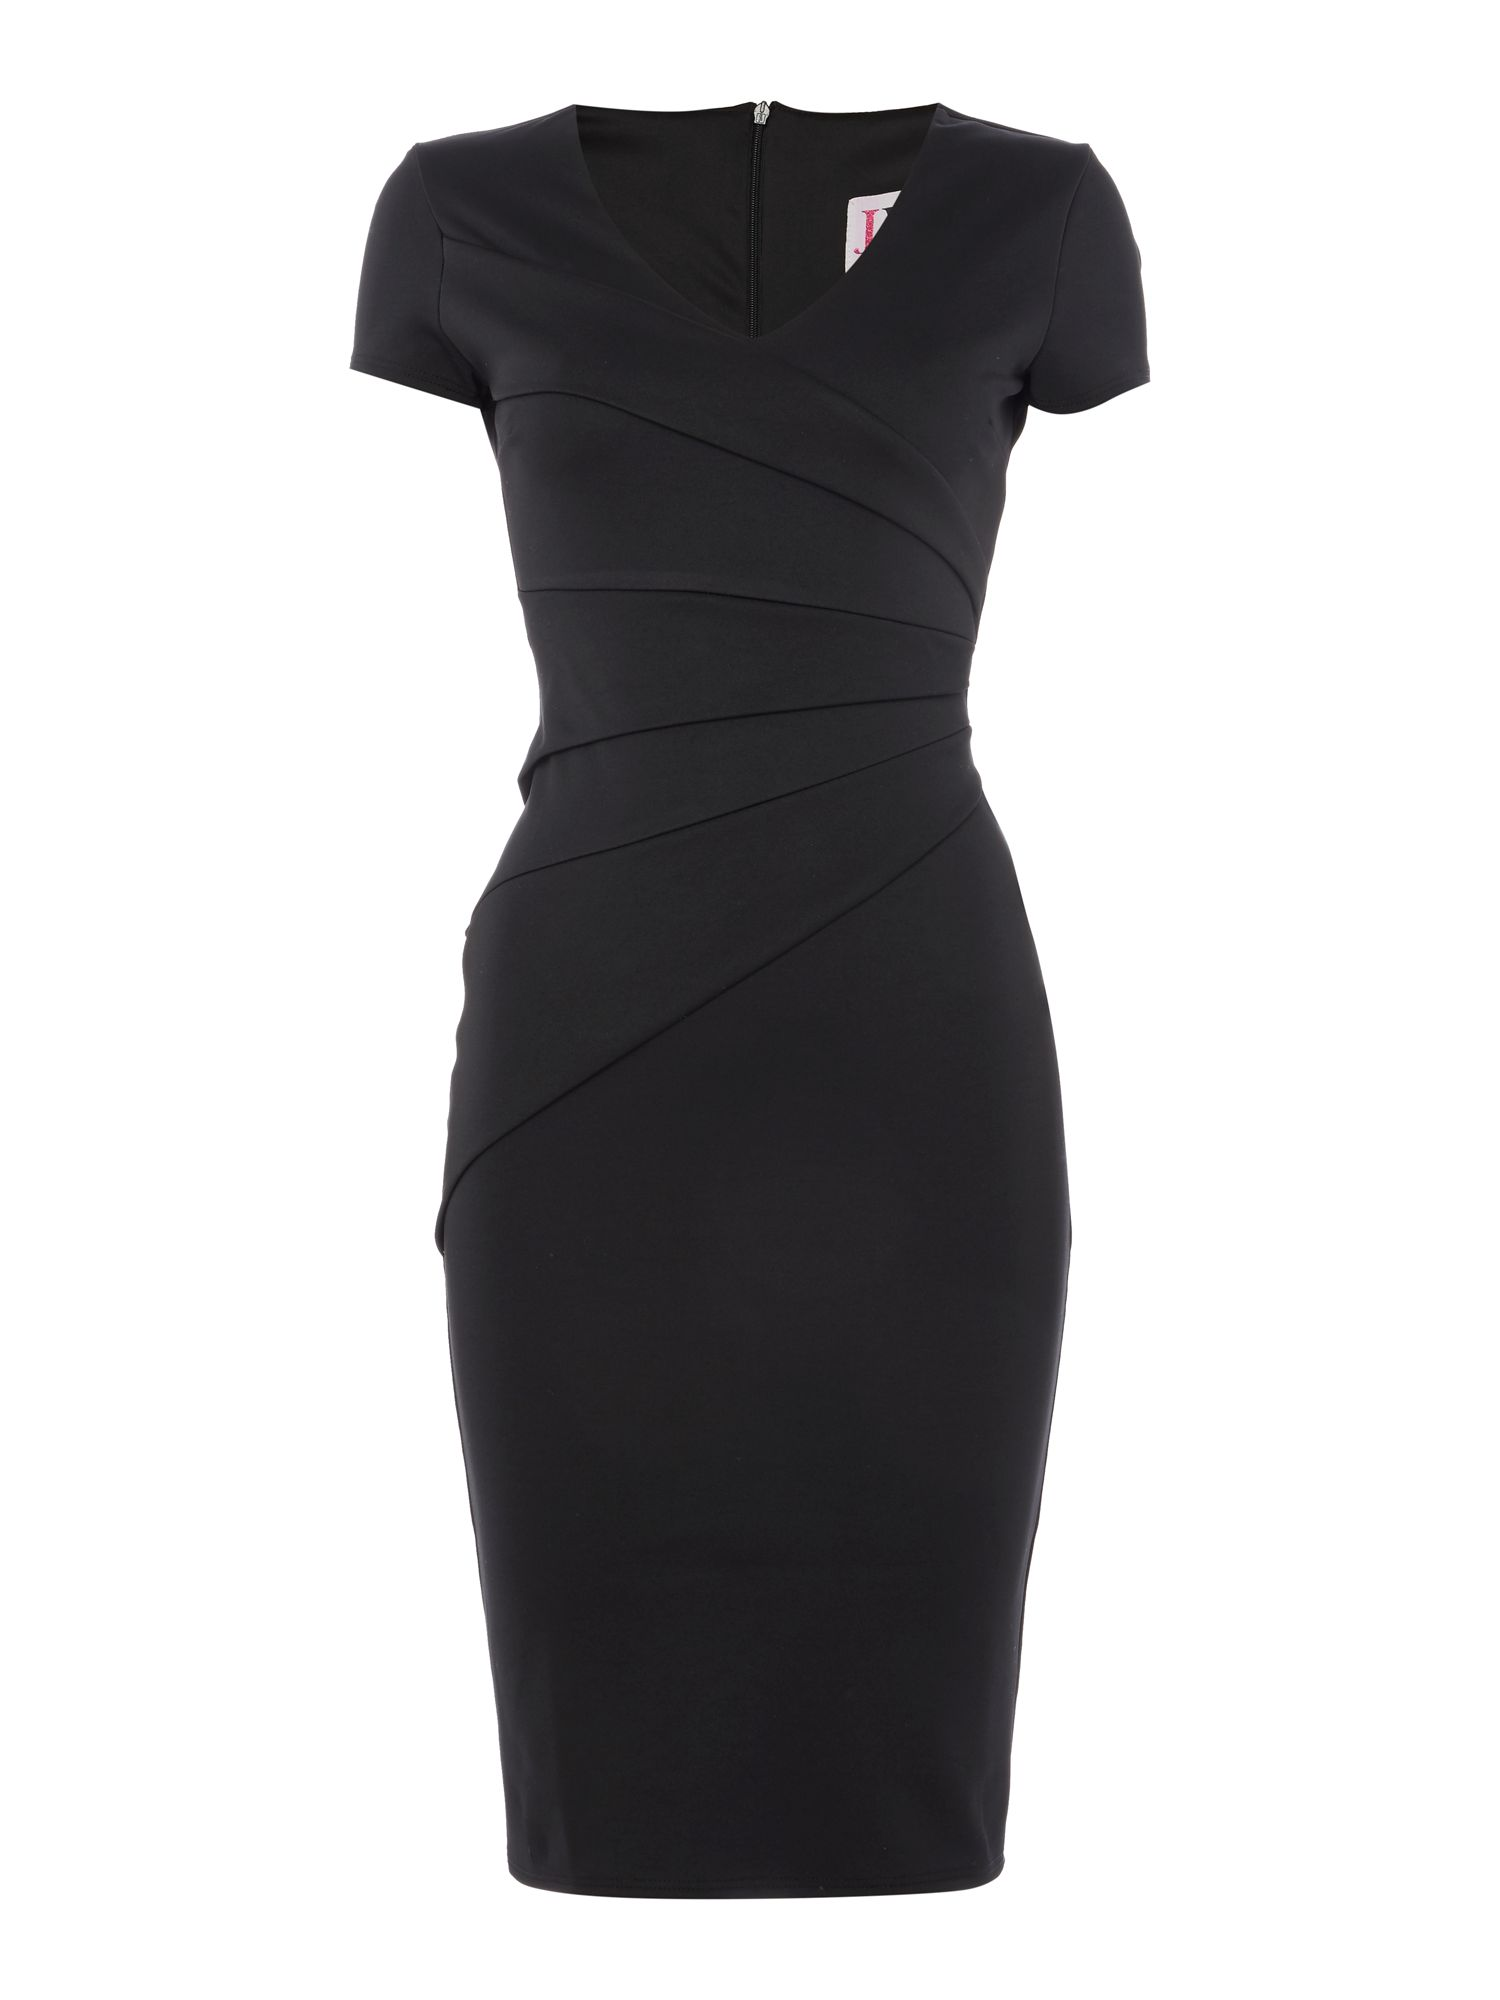 Jessica Wright Cap Sleeve V Neck Bodycon Dress, Black